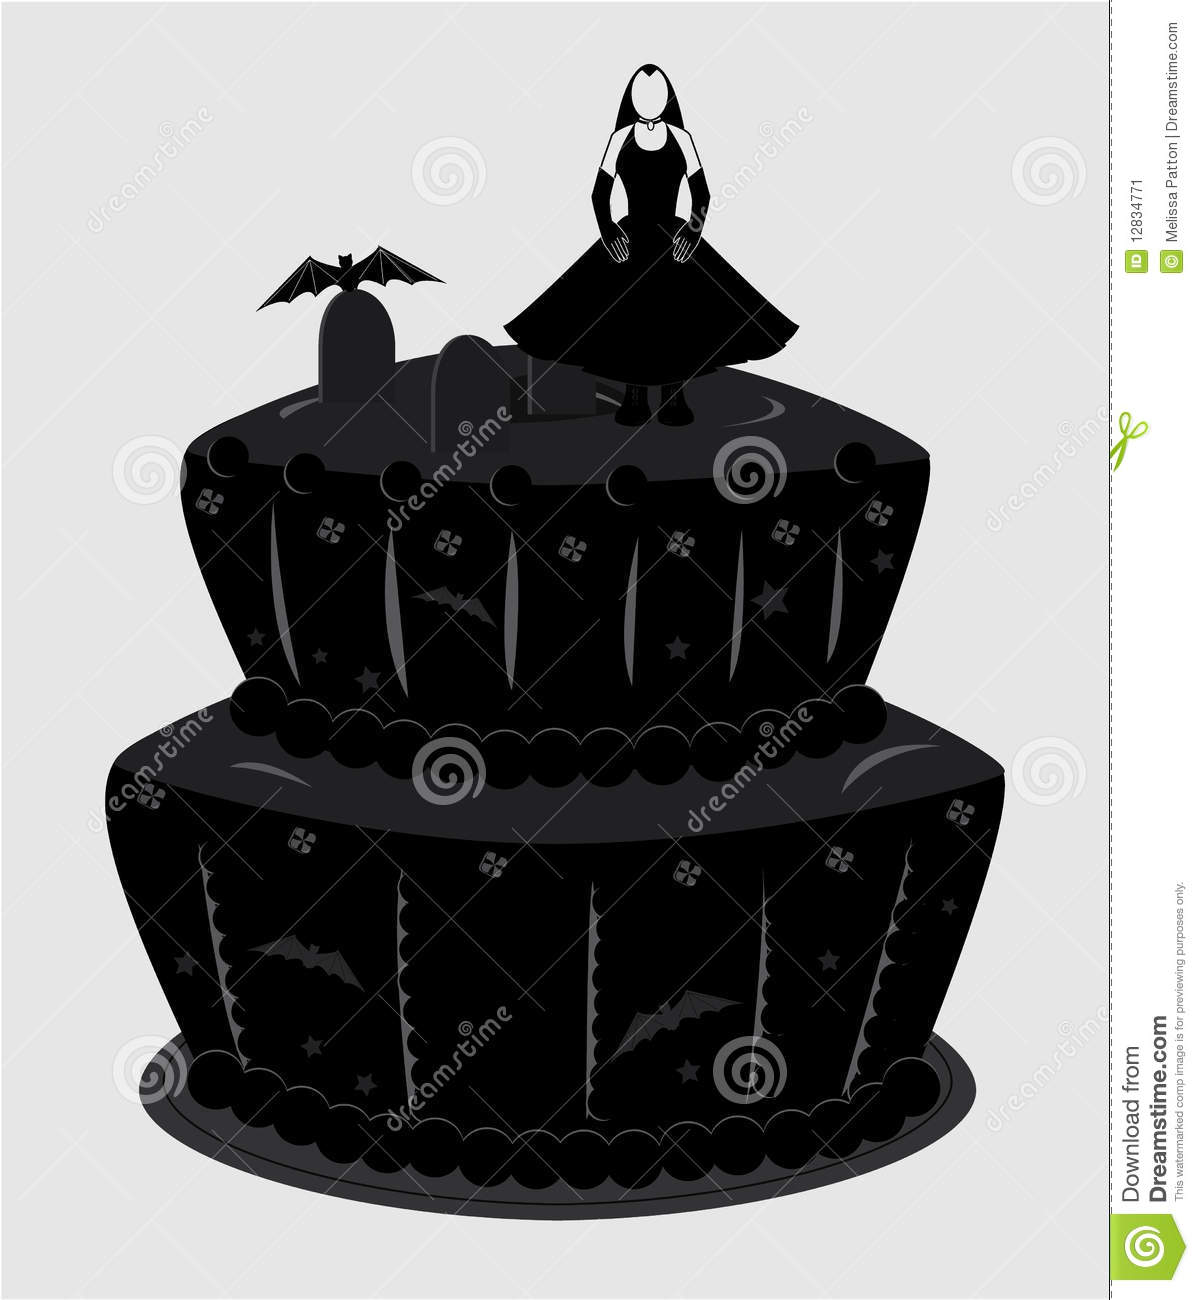 10 Gothic 2 Tier Birthday Cakes Photo Black And White Two Tier